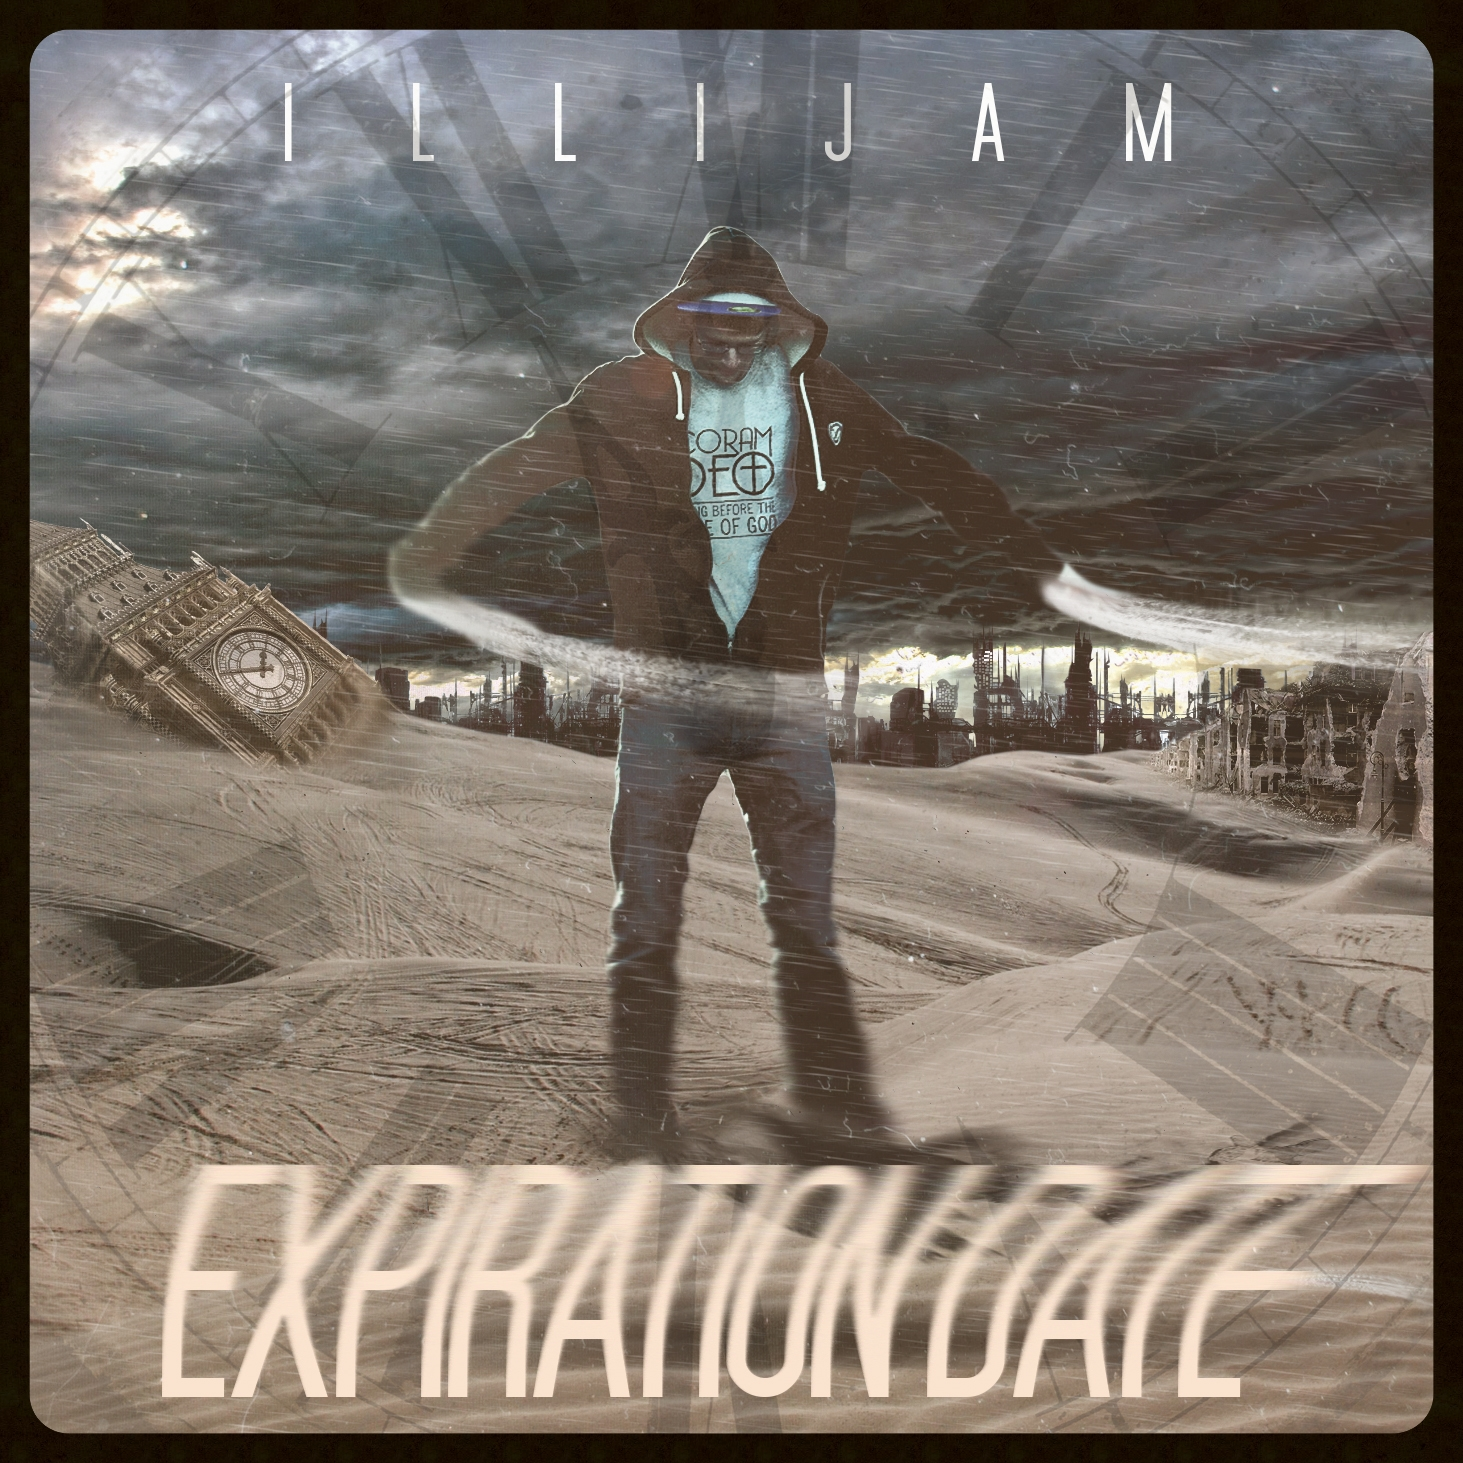 Expiration Date Album Cover.jpg